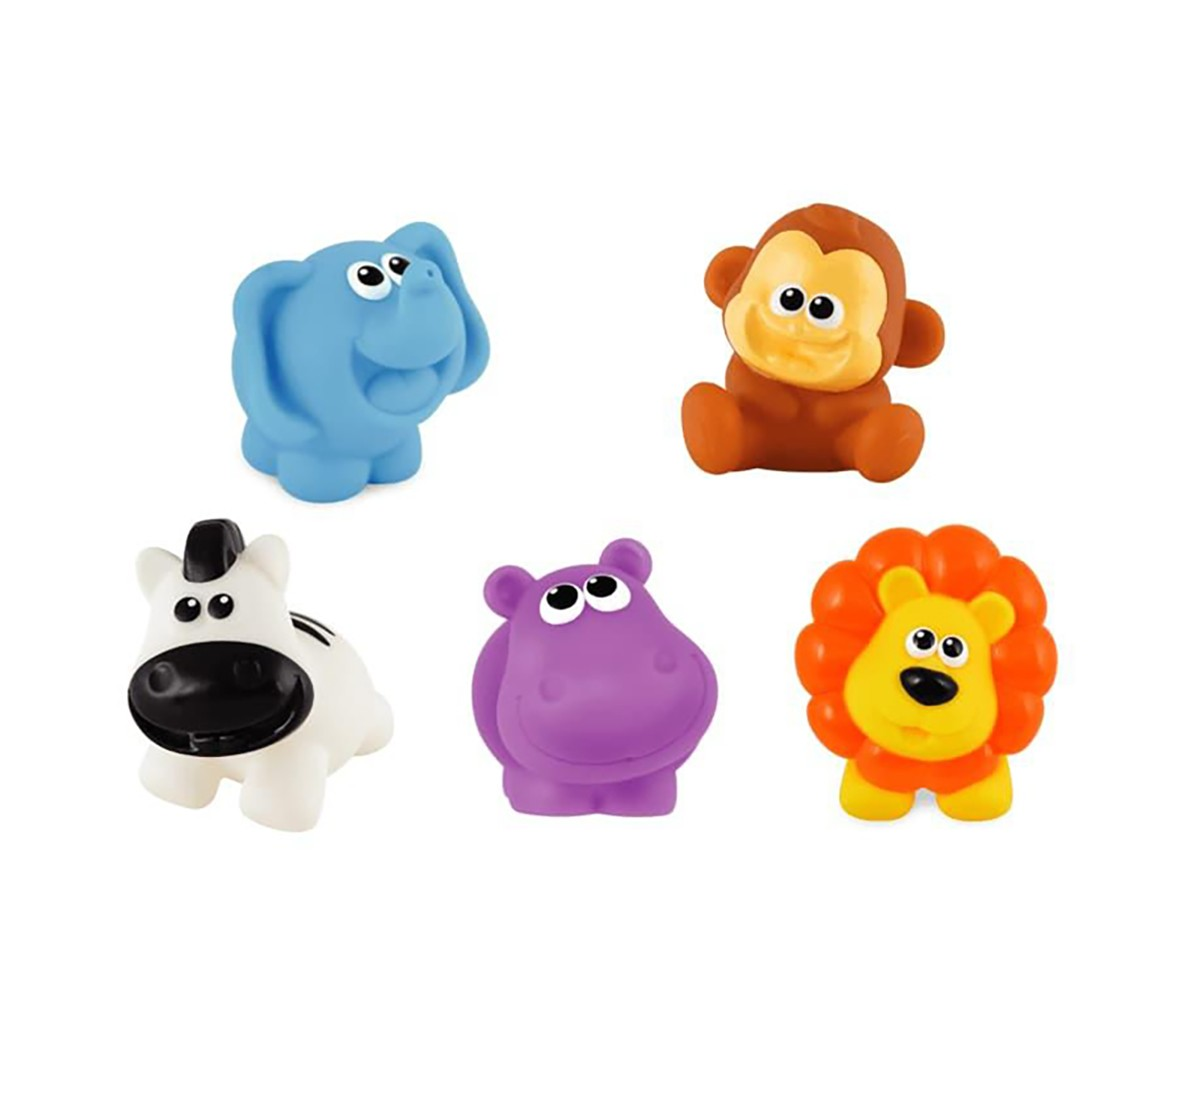 Winfun My Jungle Pals Set  Bath Toys & Accessories for Kids age 6M+